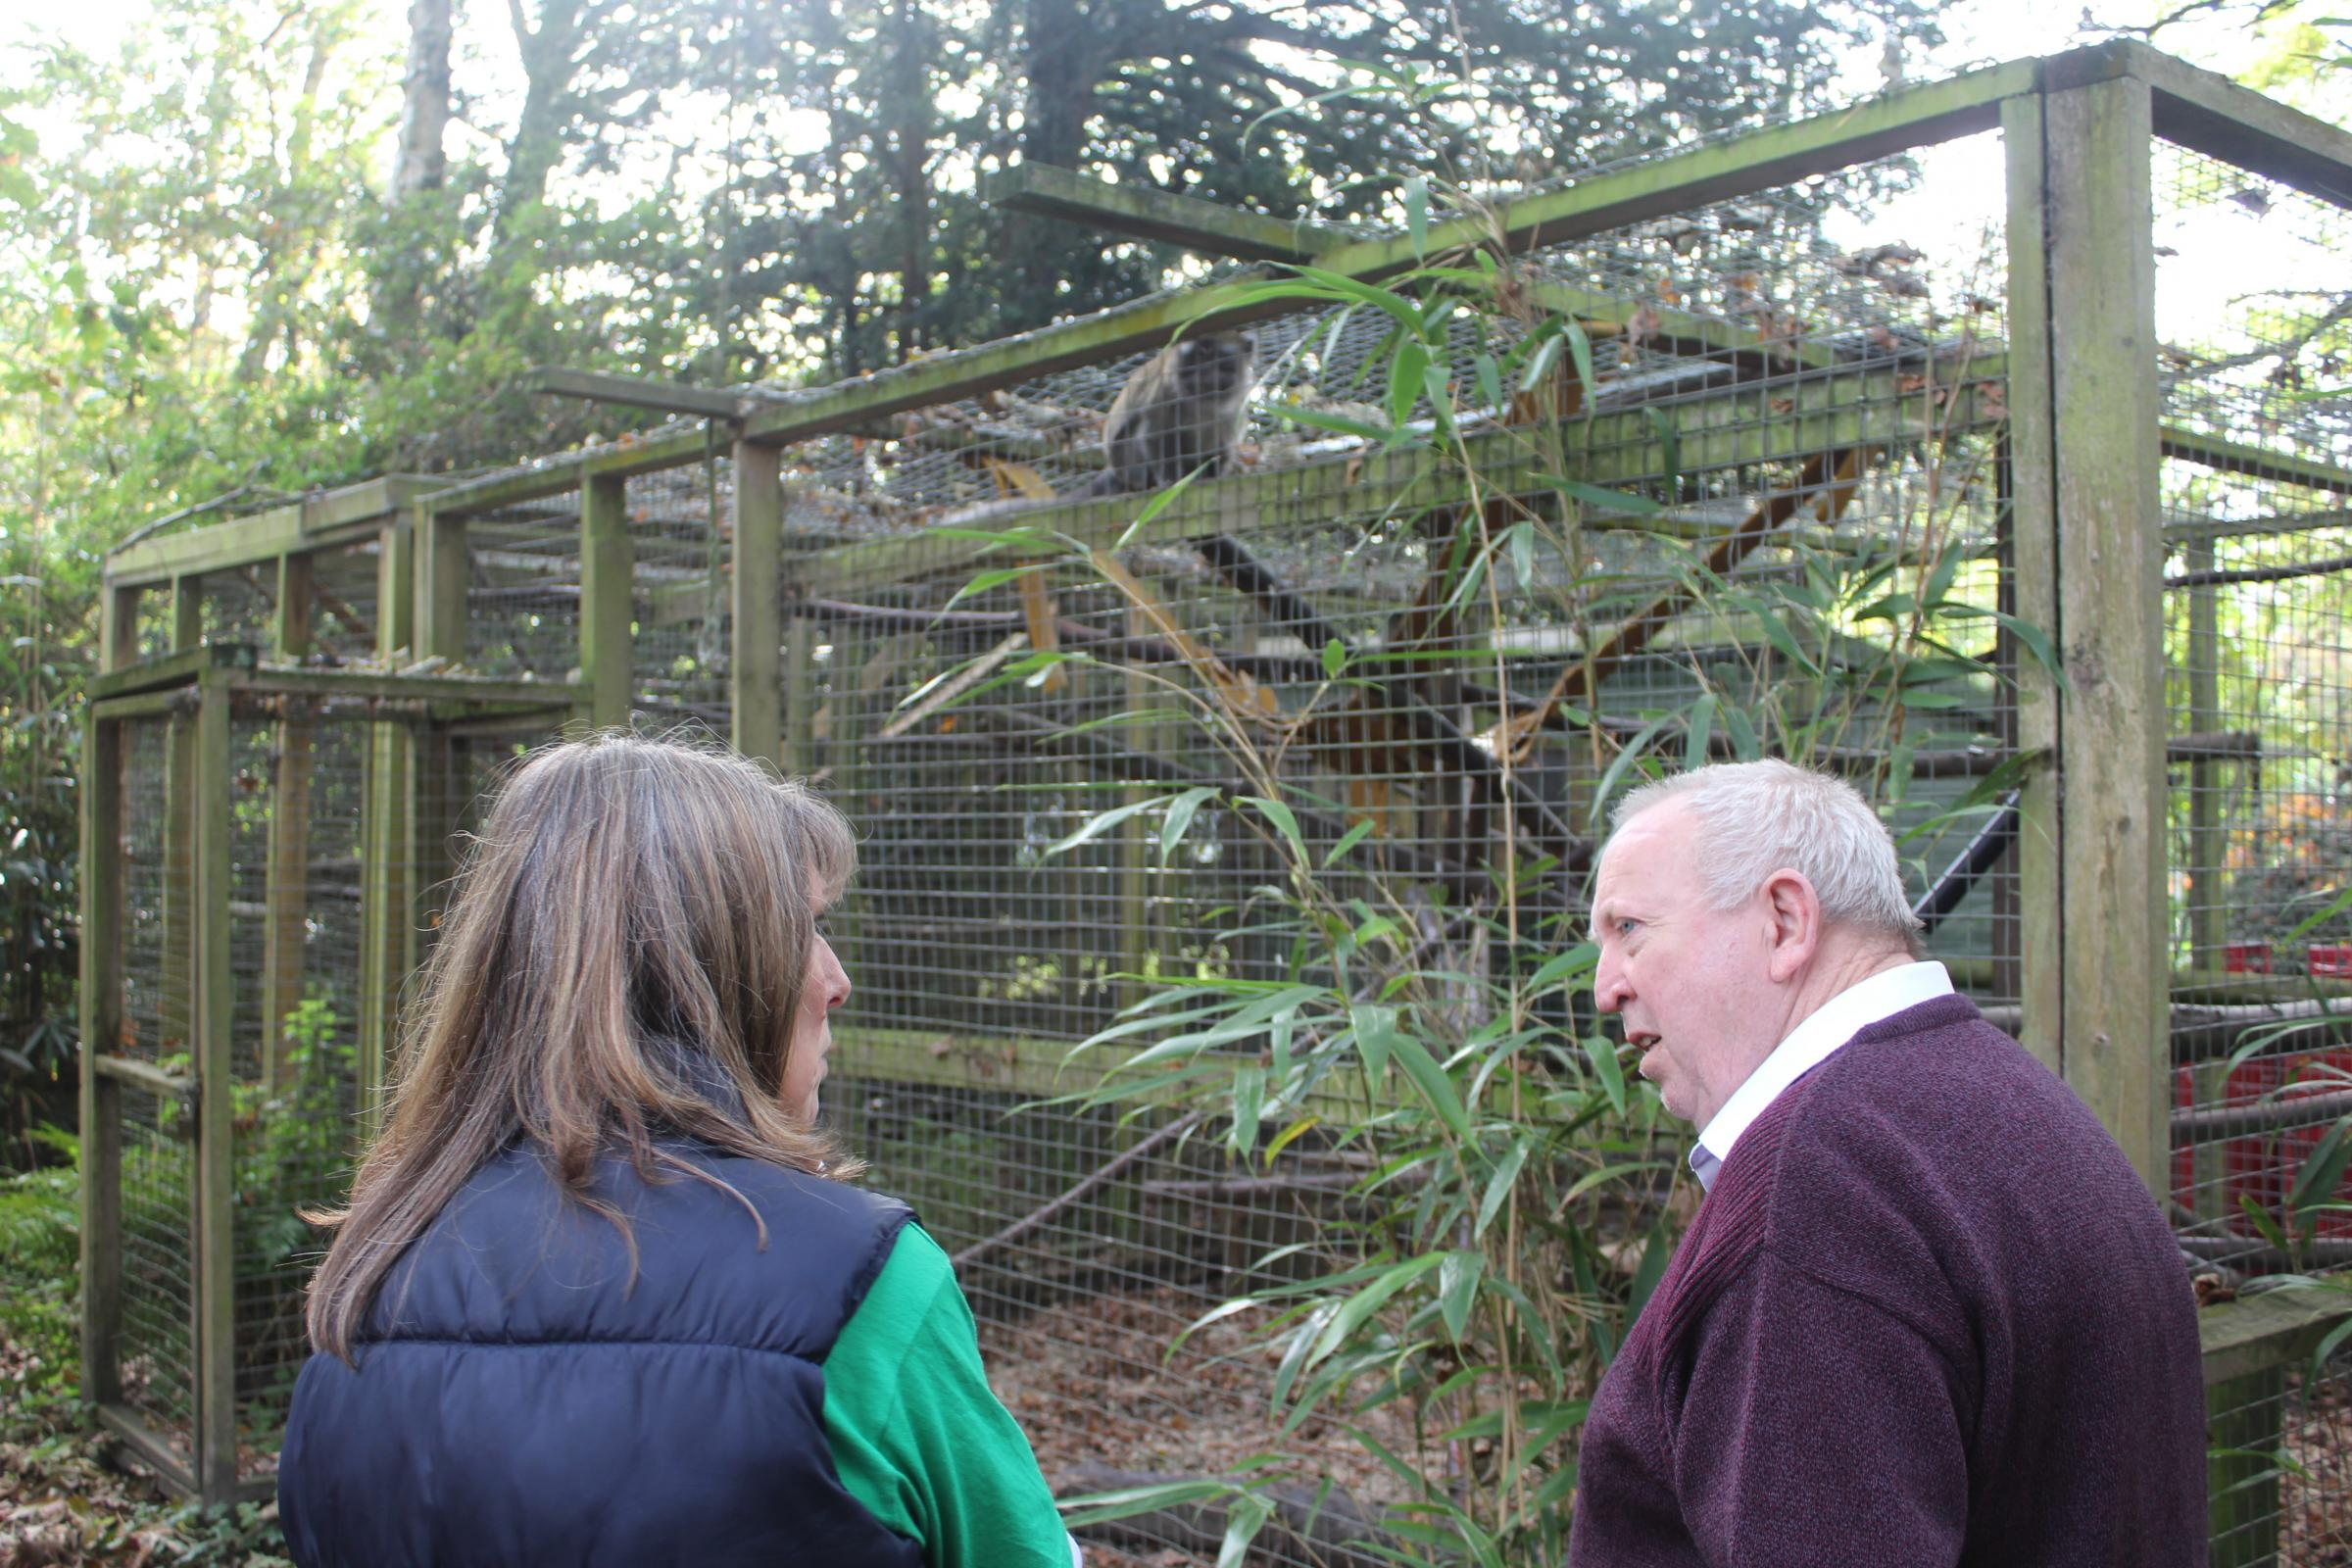 Keith Taylor MEP with Sharon Shaw, founder of the Lakeview Monkey Sanctuary, discussing the campaign to ban primates as pets in the UK